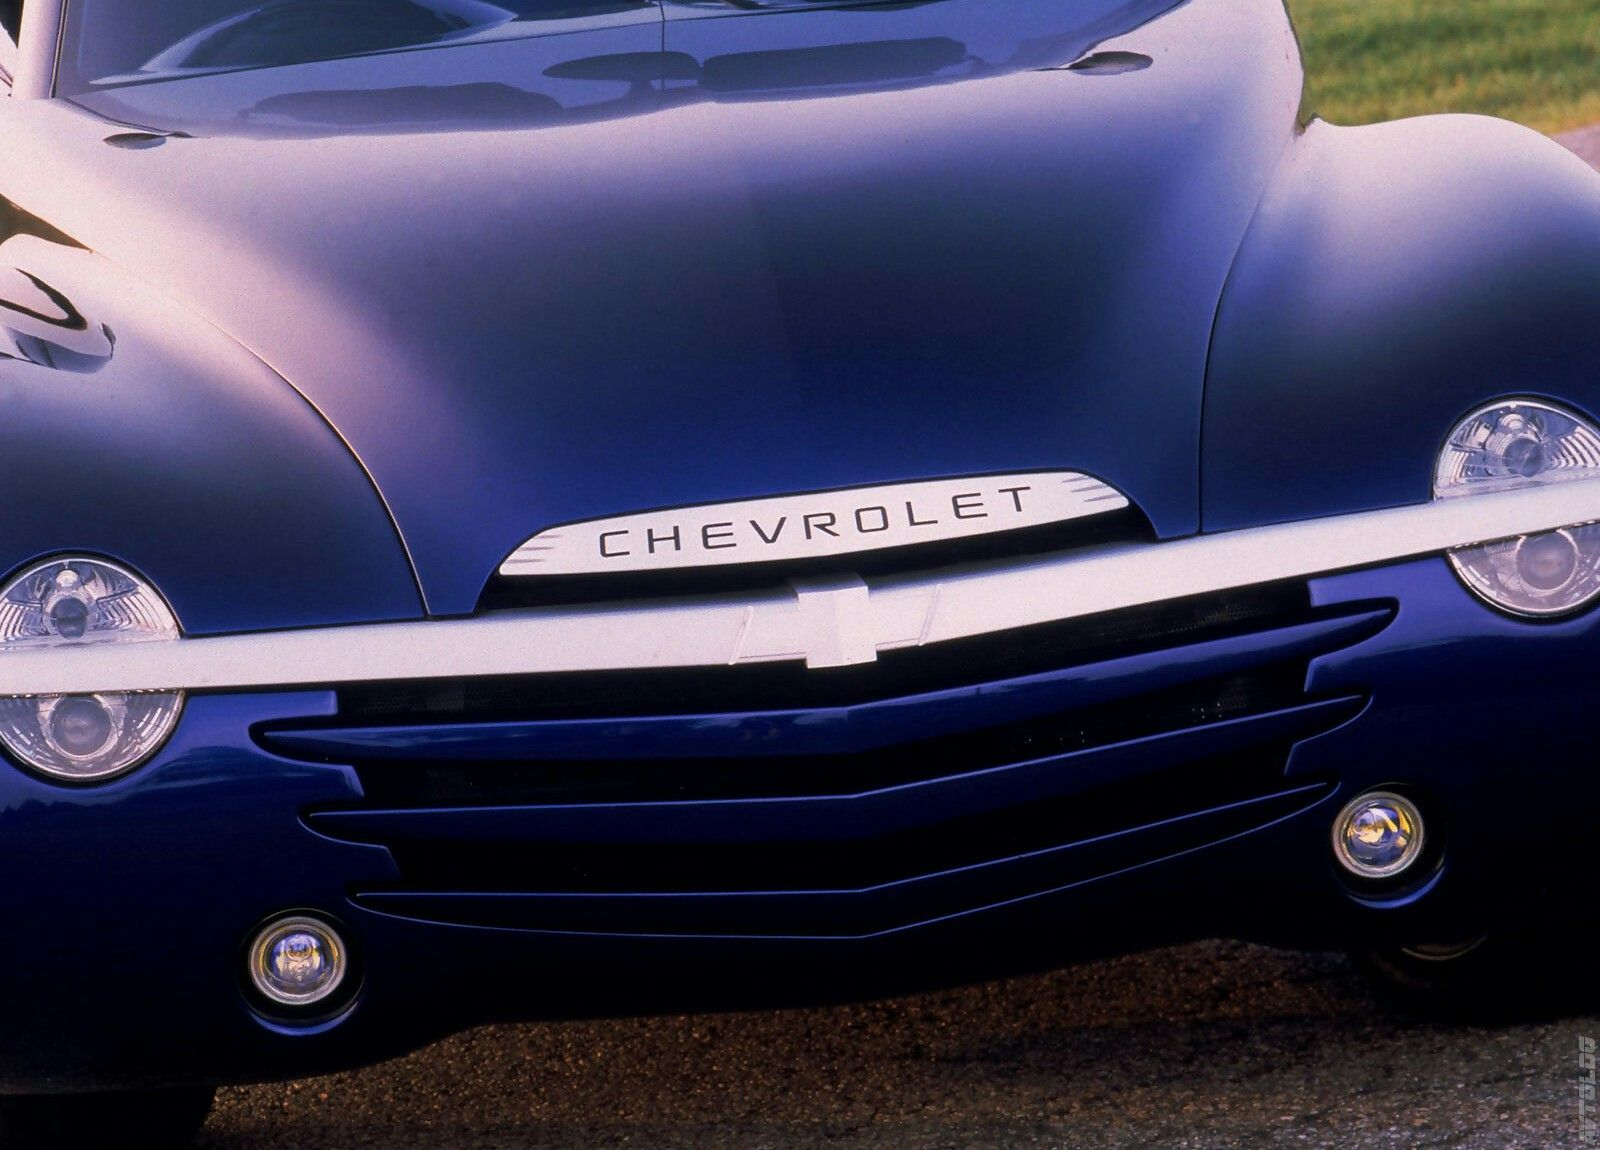 Chevrolet ssr wikipedia the free hd wallpaper auto hd wallpapers pinterest chevy ssr chevrolet and chevy